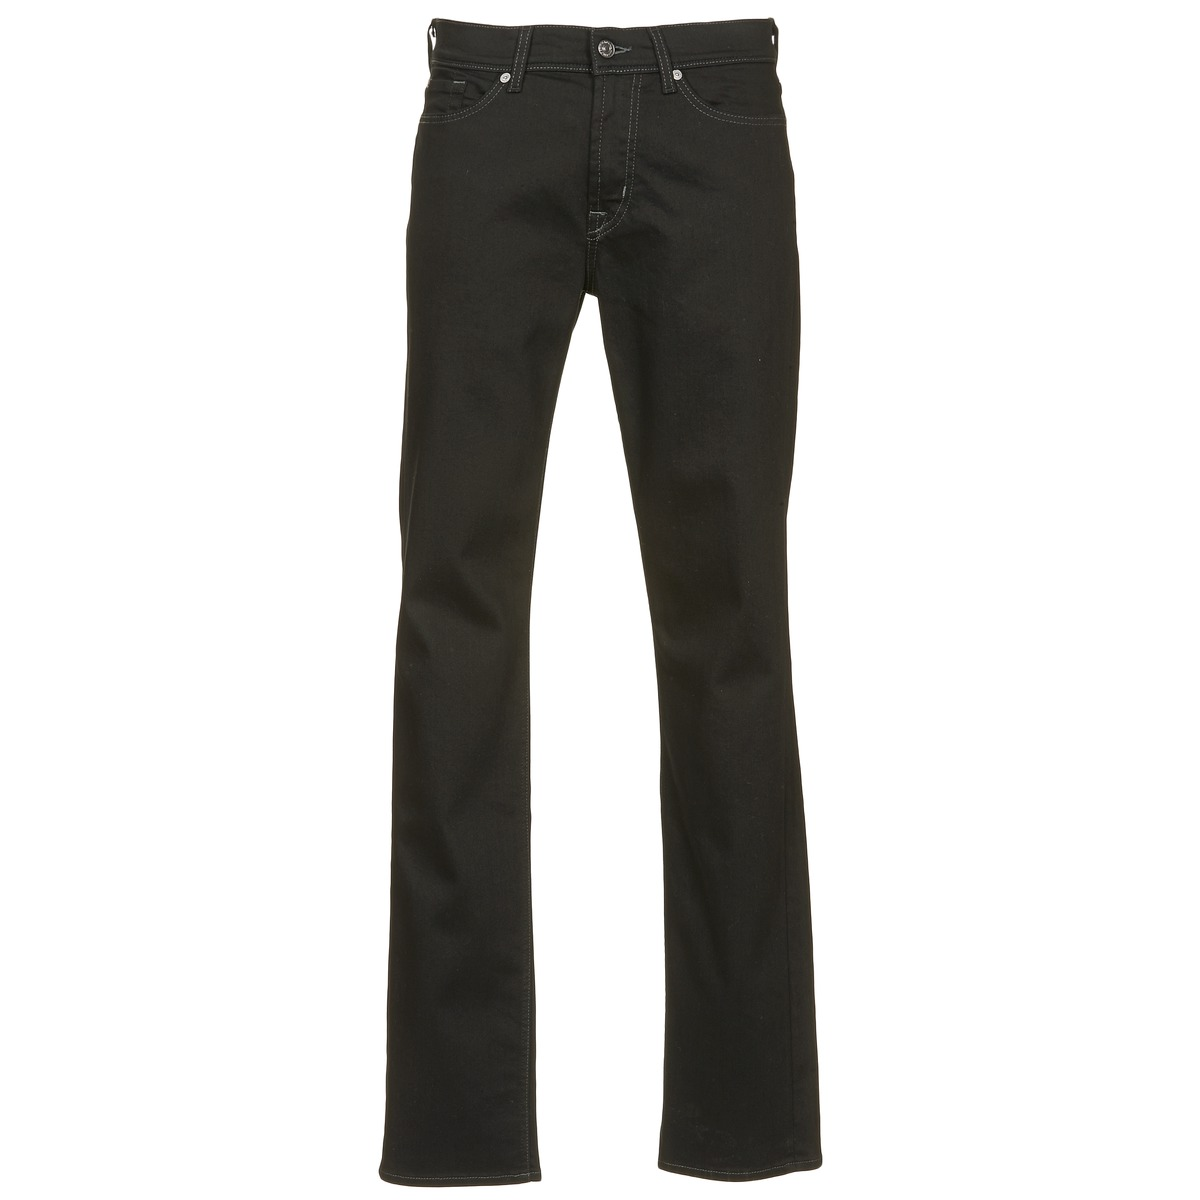 7 for all mankind  slimmy luxe performance  men's skinny jeans in black